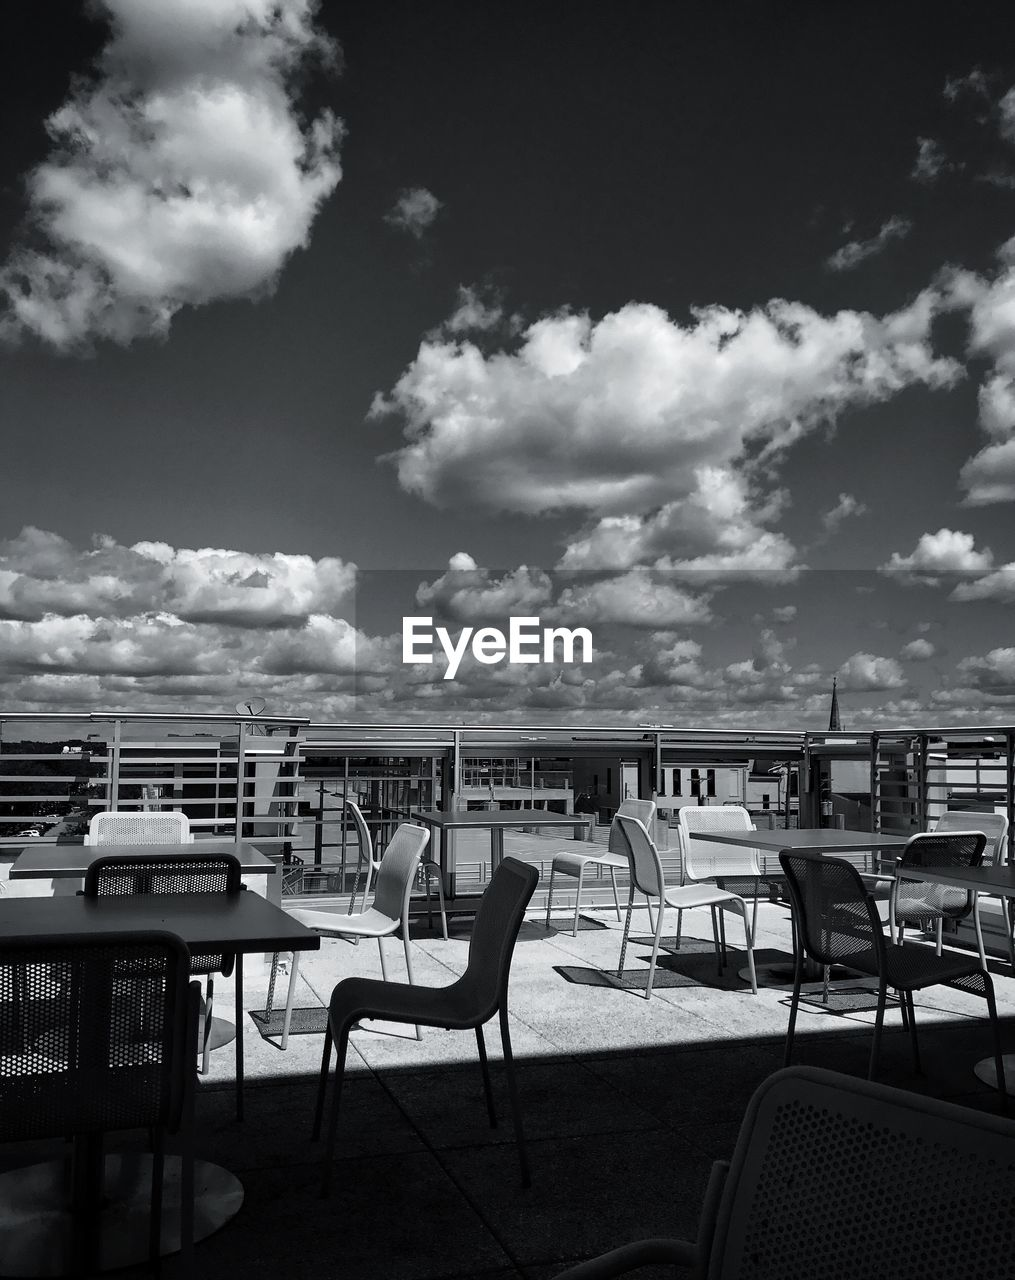 chair, table, outdoor cafe, sky, empty, restaurant, cafe, outdoors, no people, day, nature